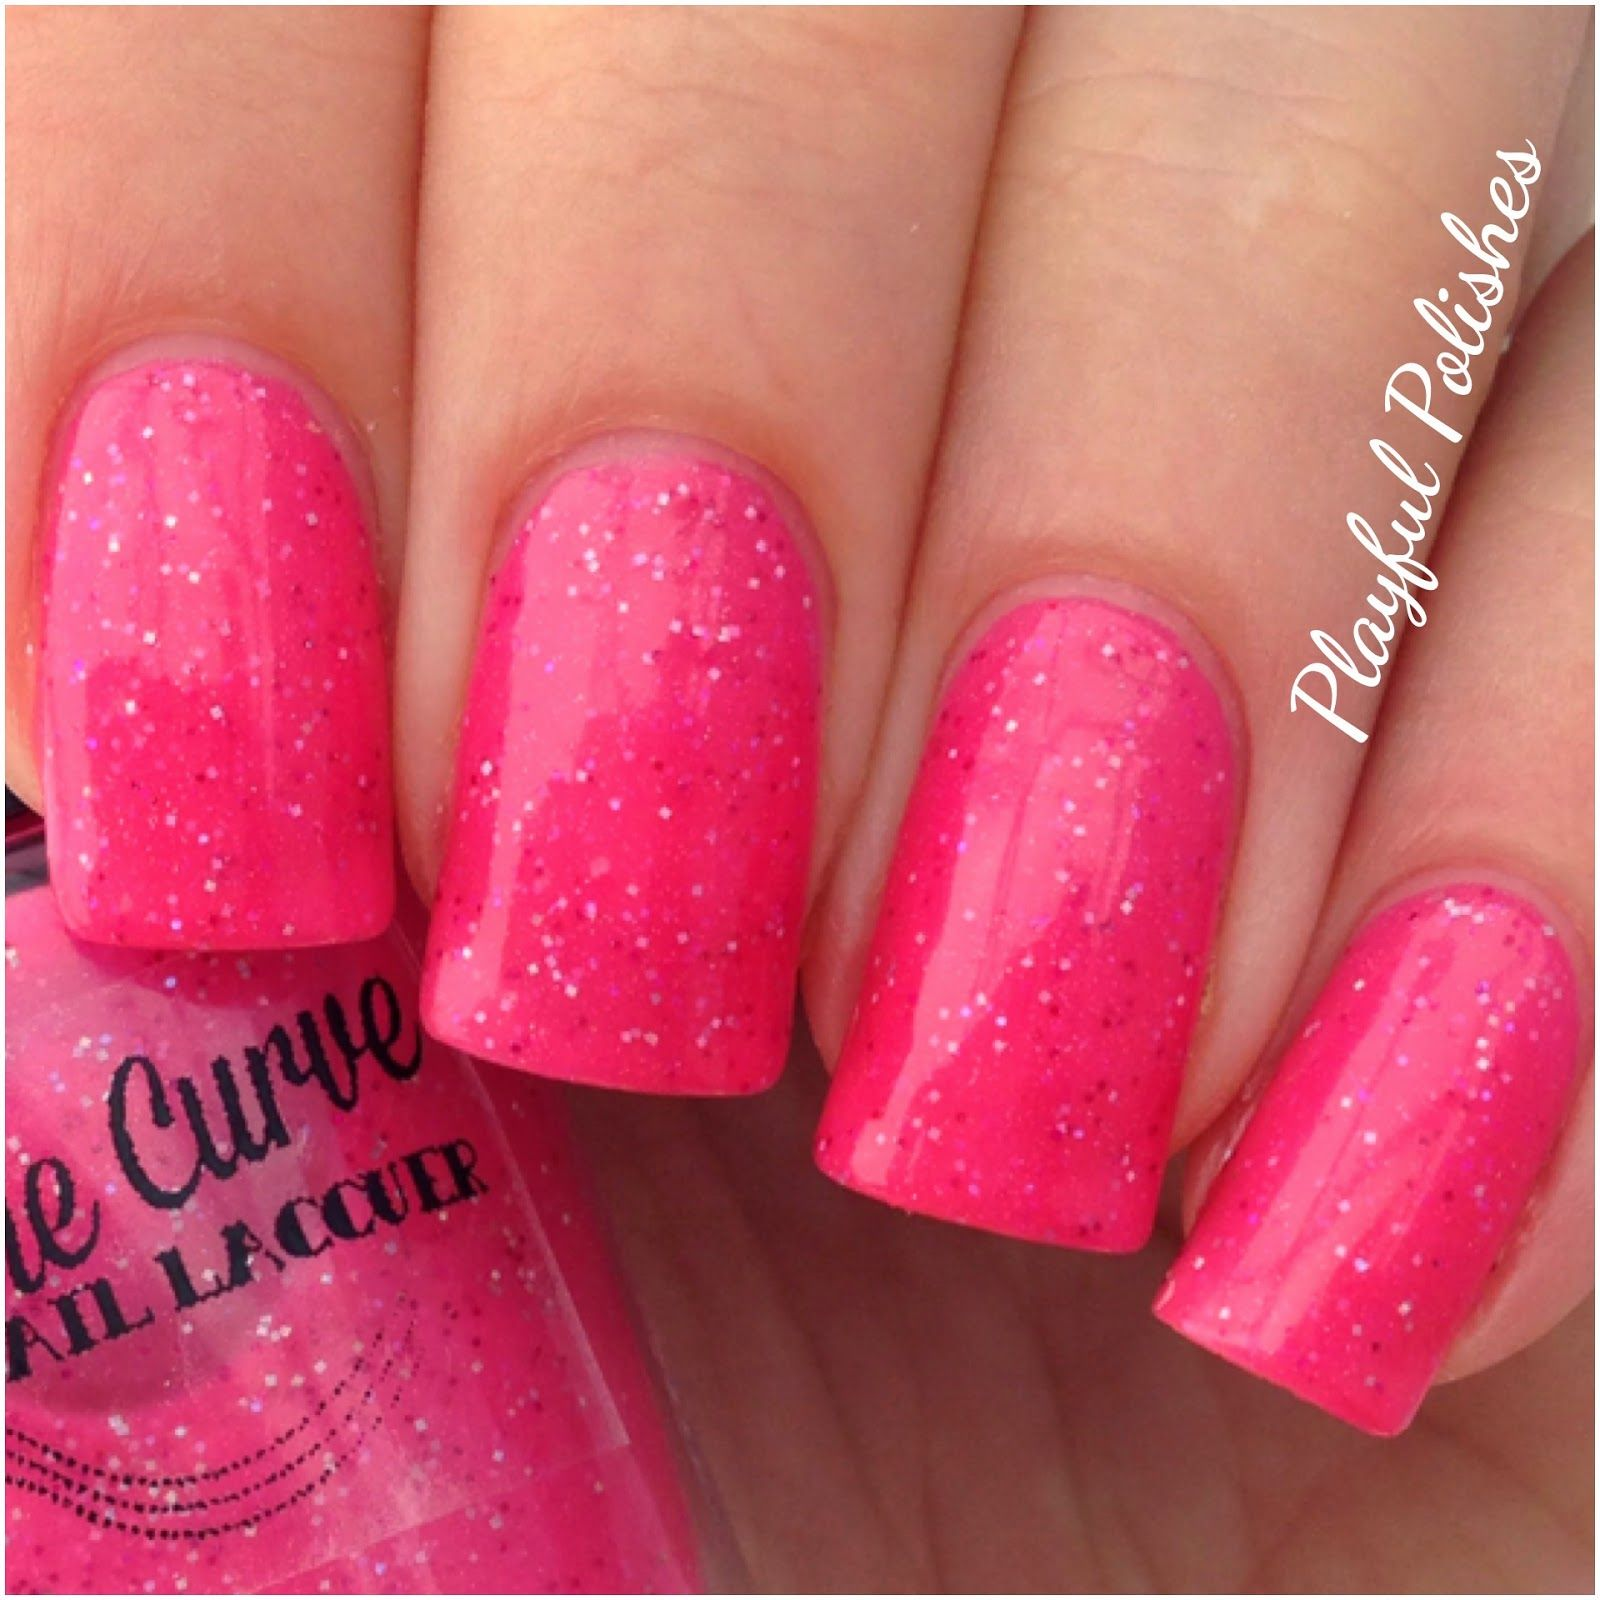 Myrtle Beach By Above The Curve Nail Lacquer